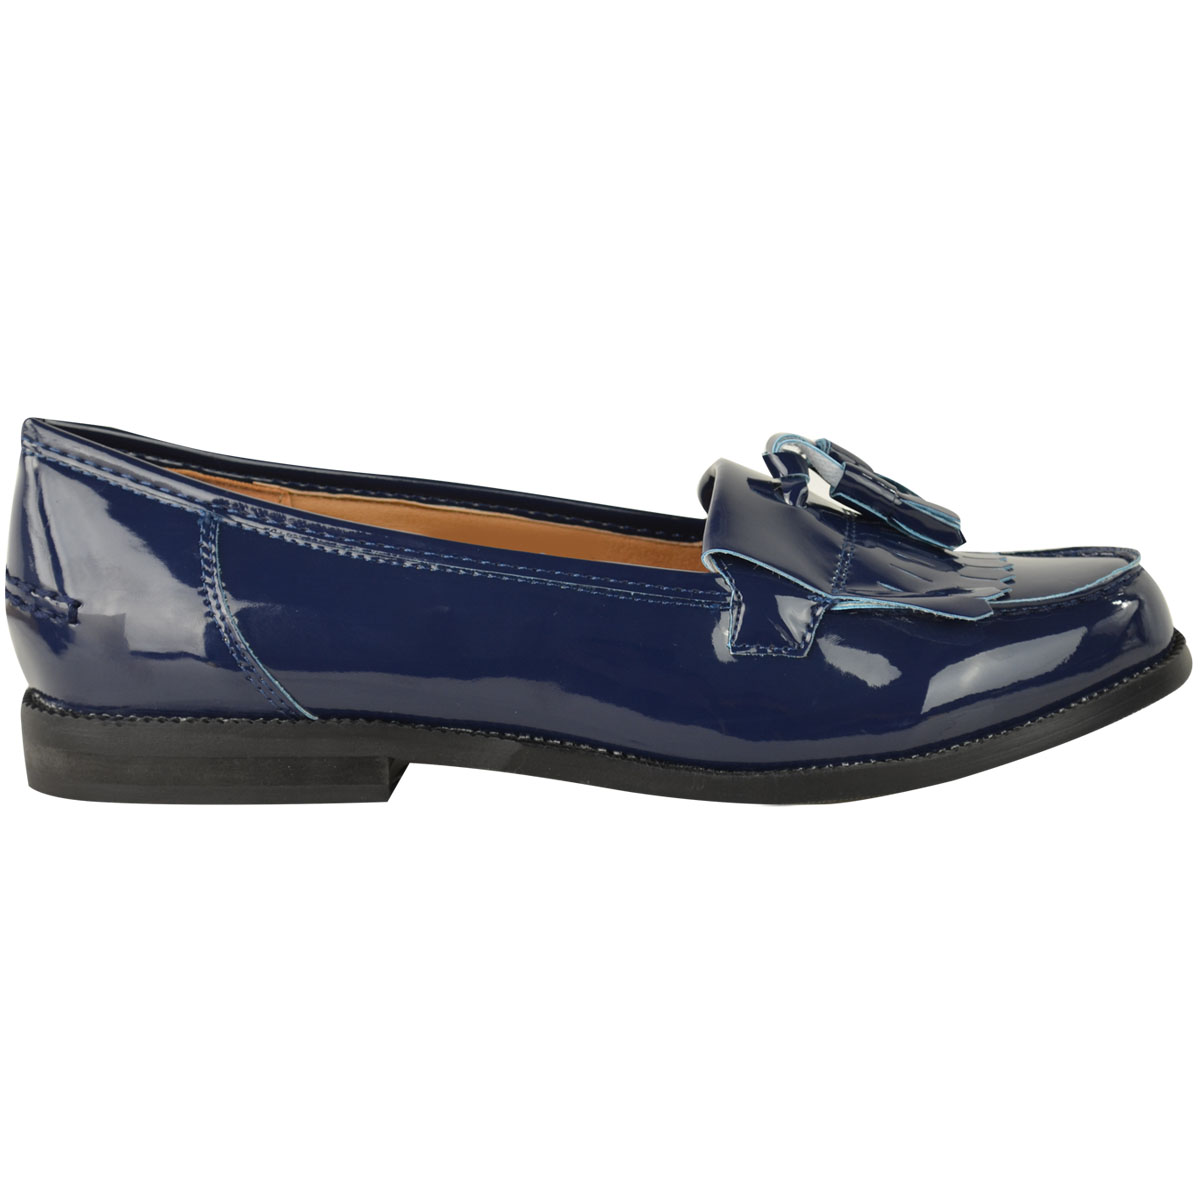 Womens-Ladies-Loafers-Brogues-Pumps-Casual-School-Office-Comfy-Work-Flats-Size thumbnail 27